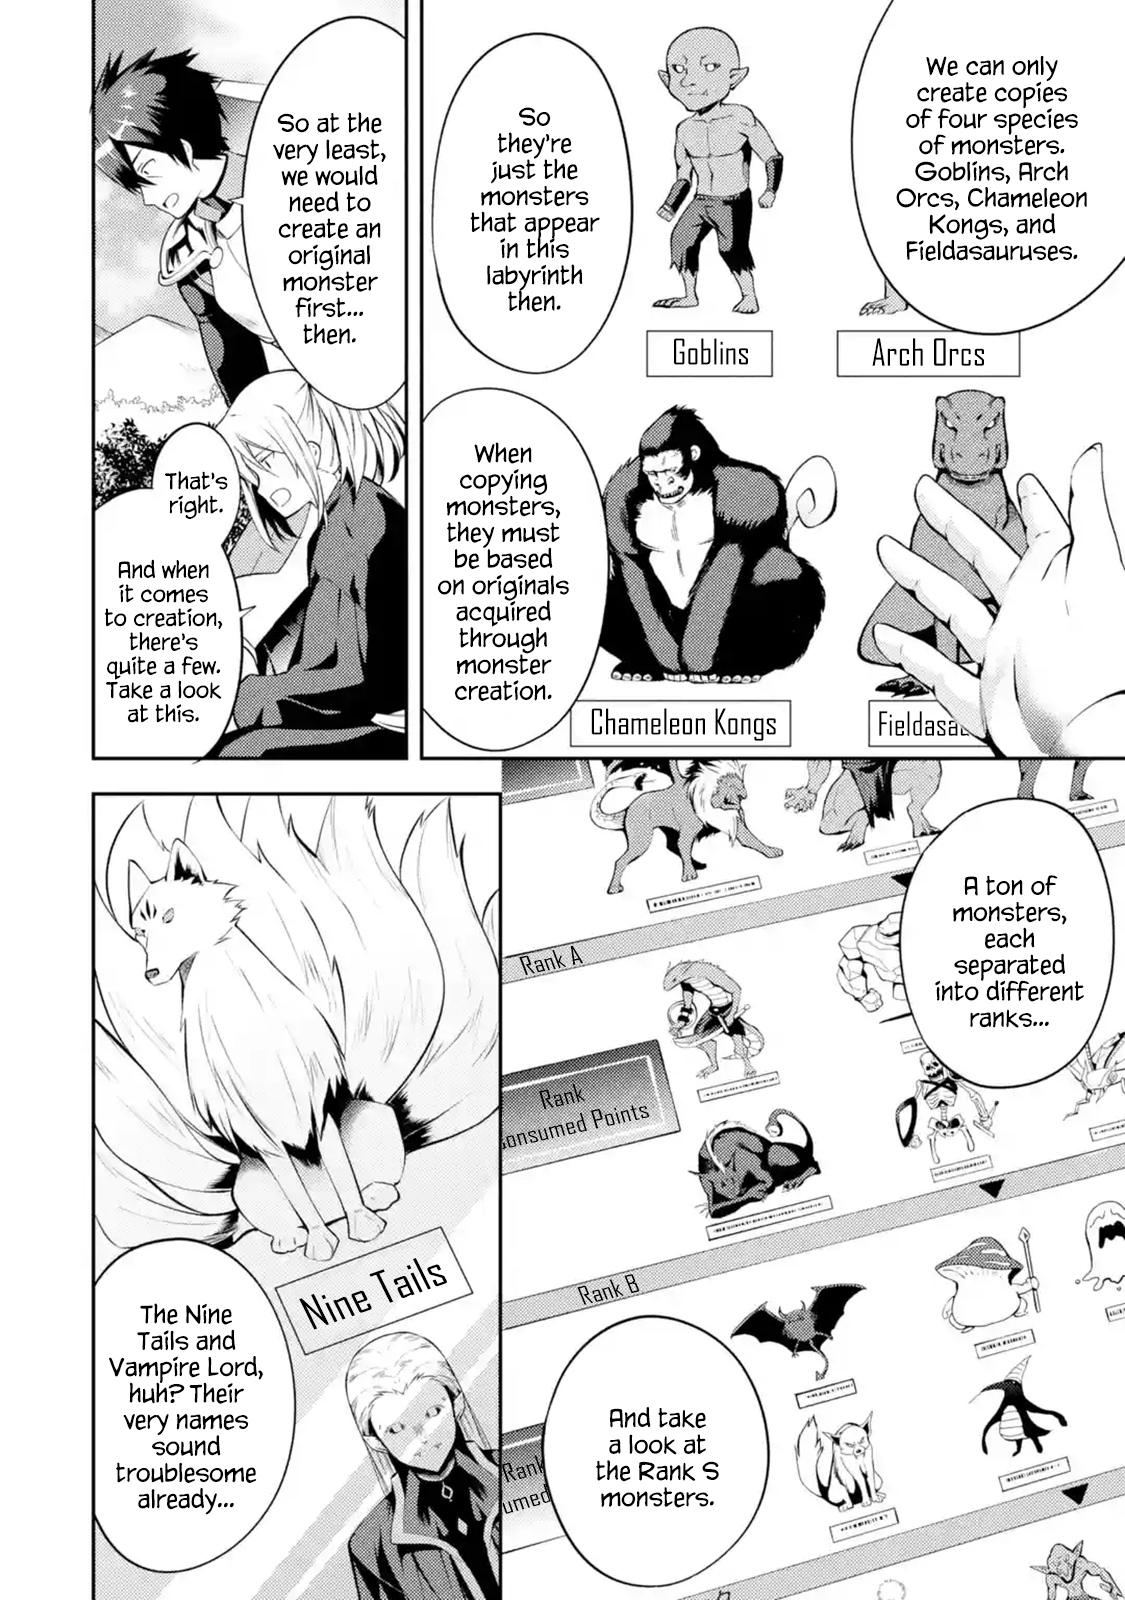 Manga The Labyrinth Raids of the Ultimate Tank ~The Tank Possessing a Rare 9,999 Endurance Skill was Expelled from the Hero Party~ - Chapter 11.3 Page 1